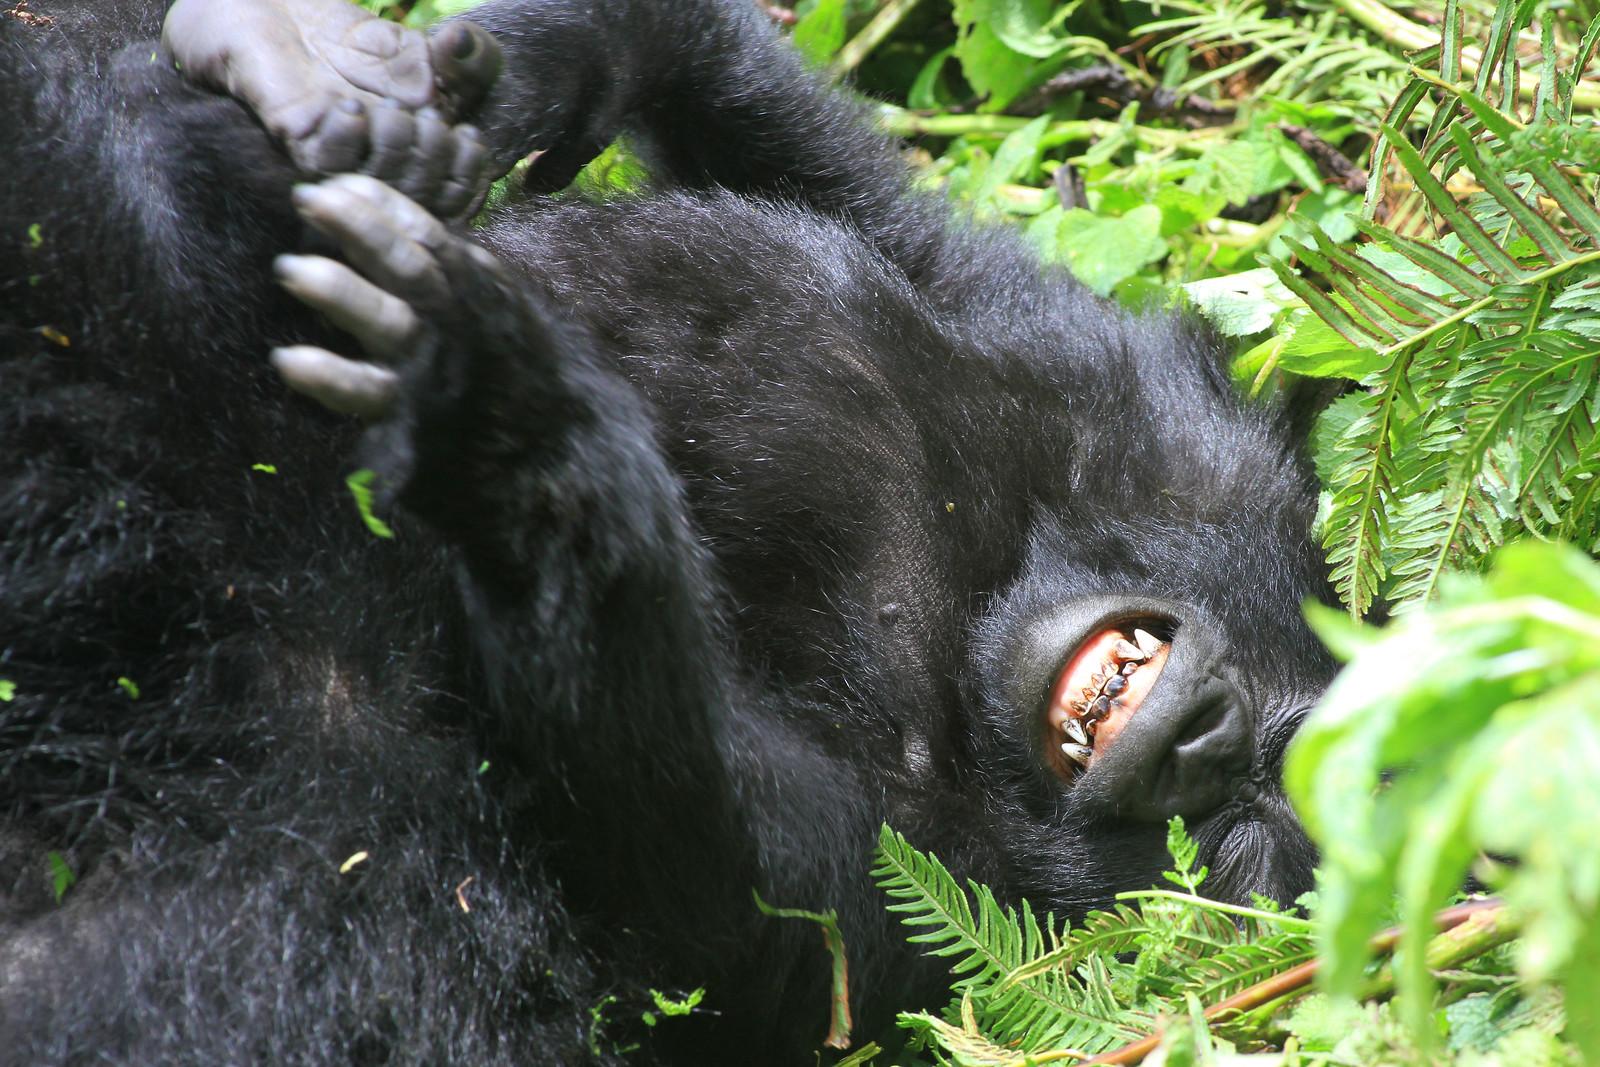 Laughing Gorilla - photo#3